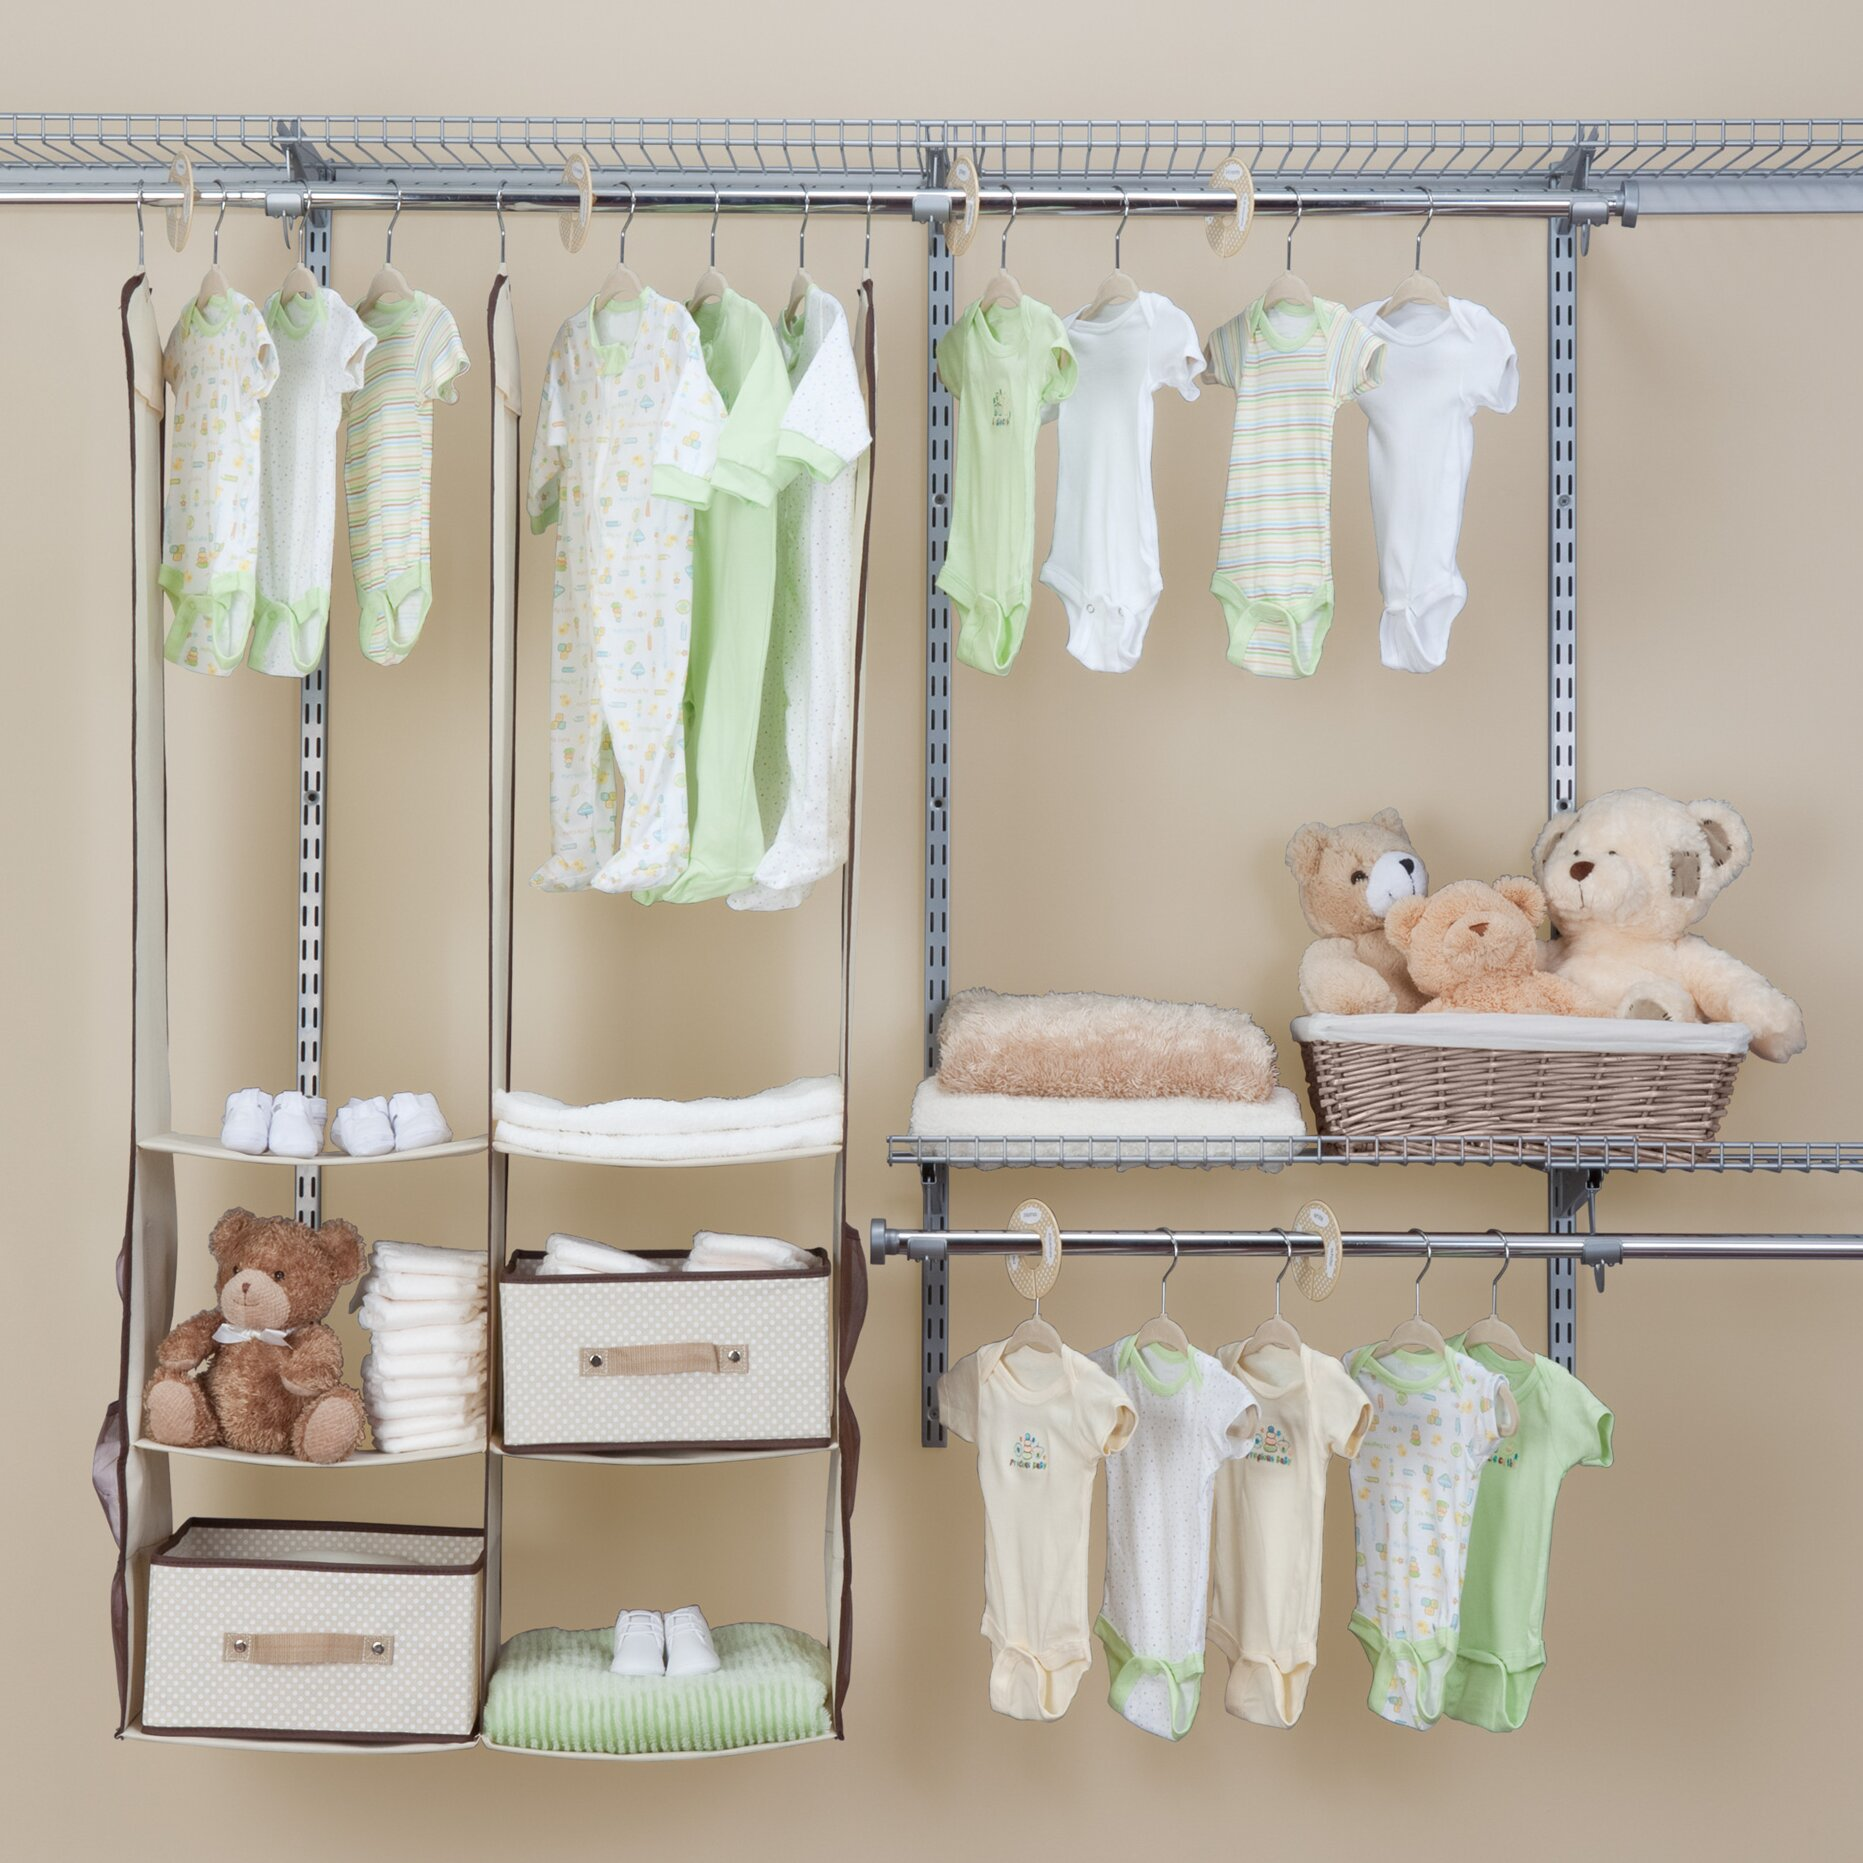 Delta Children Deep Nursery Closet Organizer 24 Piece Set Amp Reviews Wayfair